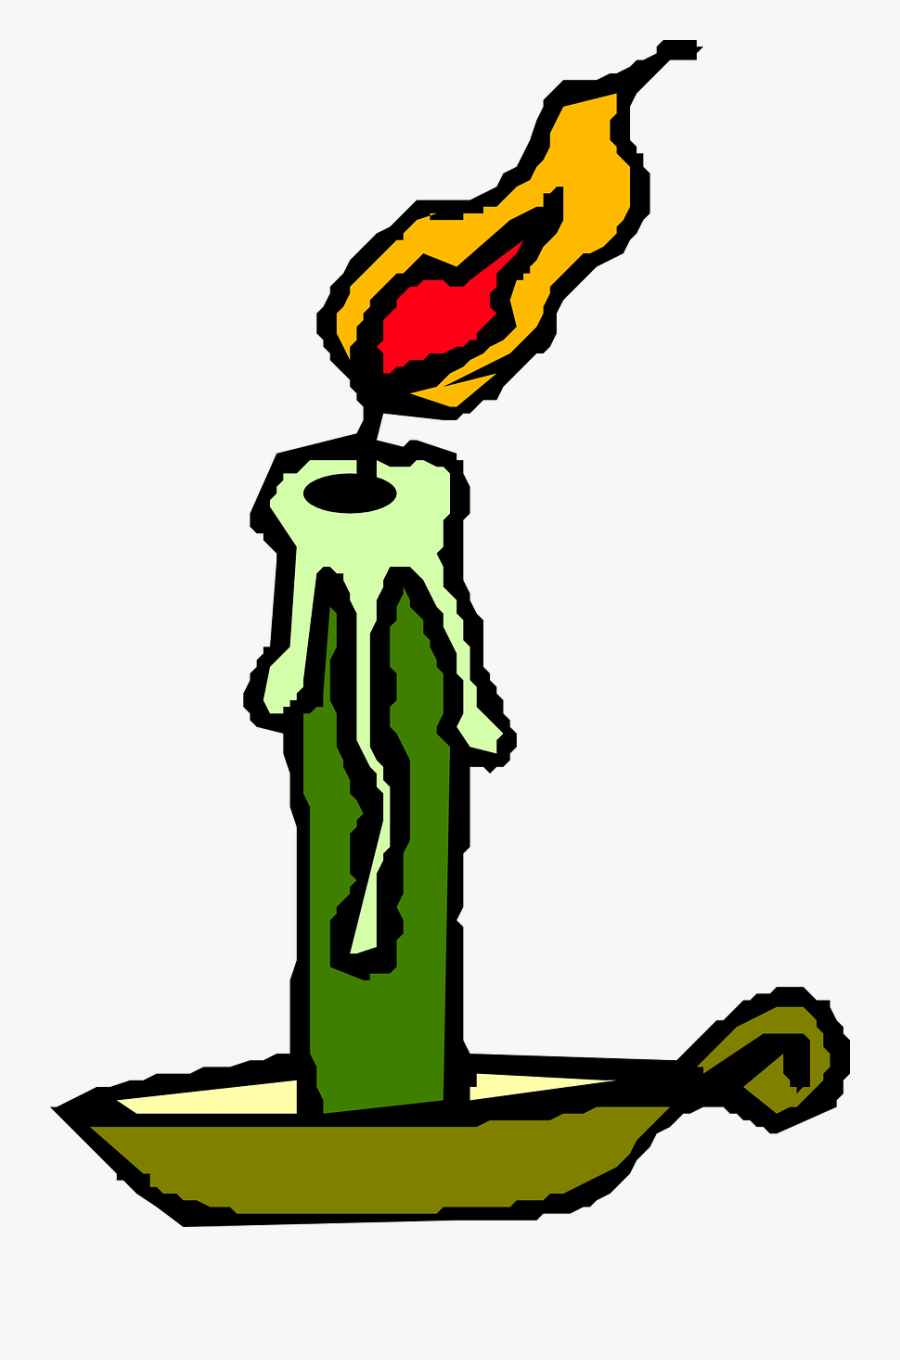 Candle, Burning, Flame, Green, Windy, Scary, Cosy - Candle Clip Art, Transparent Clipart